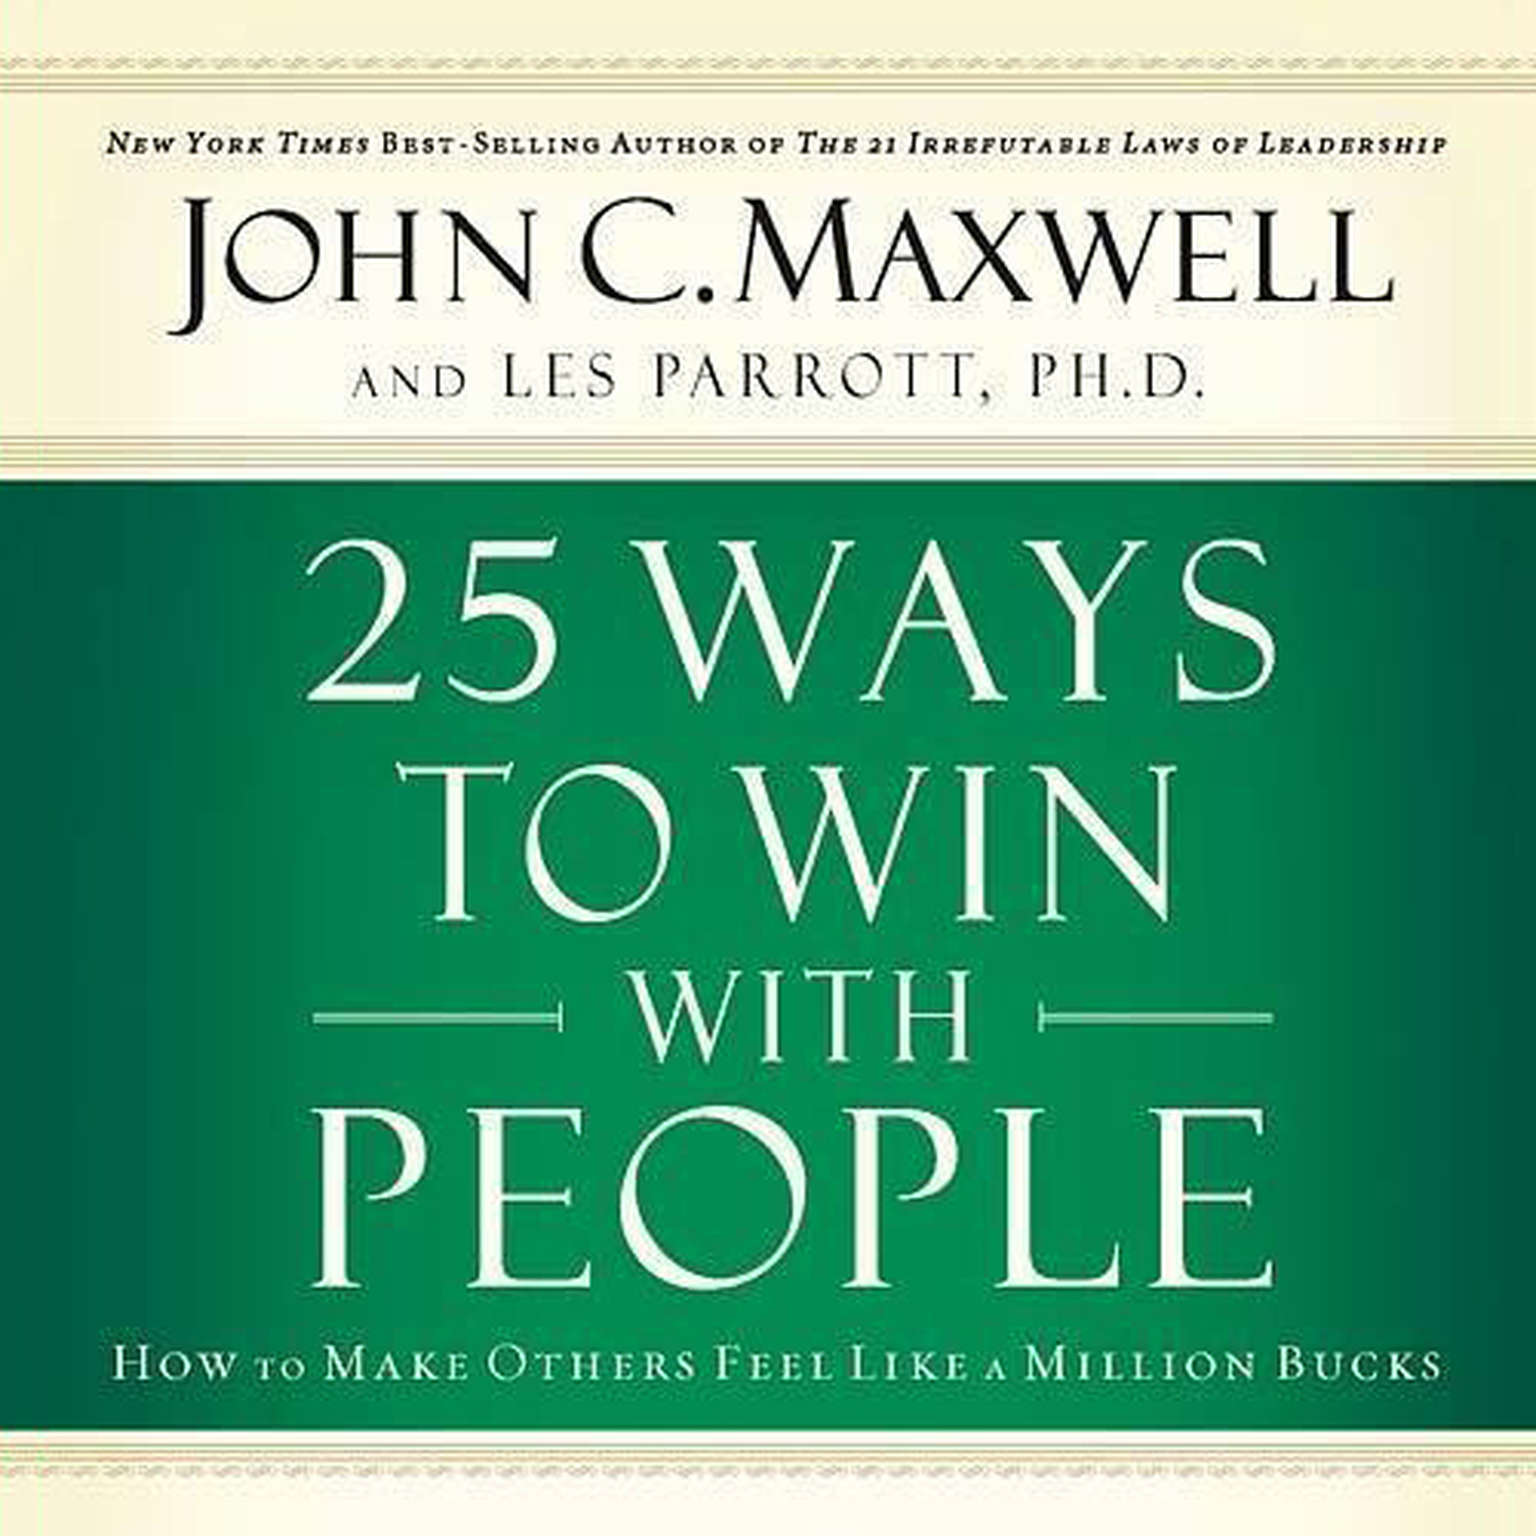 25 Ways To Win With People: How To Make Others Feel Like A Million Bucks - John C. Maxwell, Les Parrott - quotes, rating, reviews, where to buy